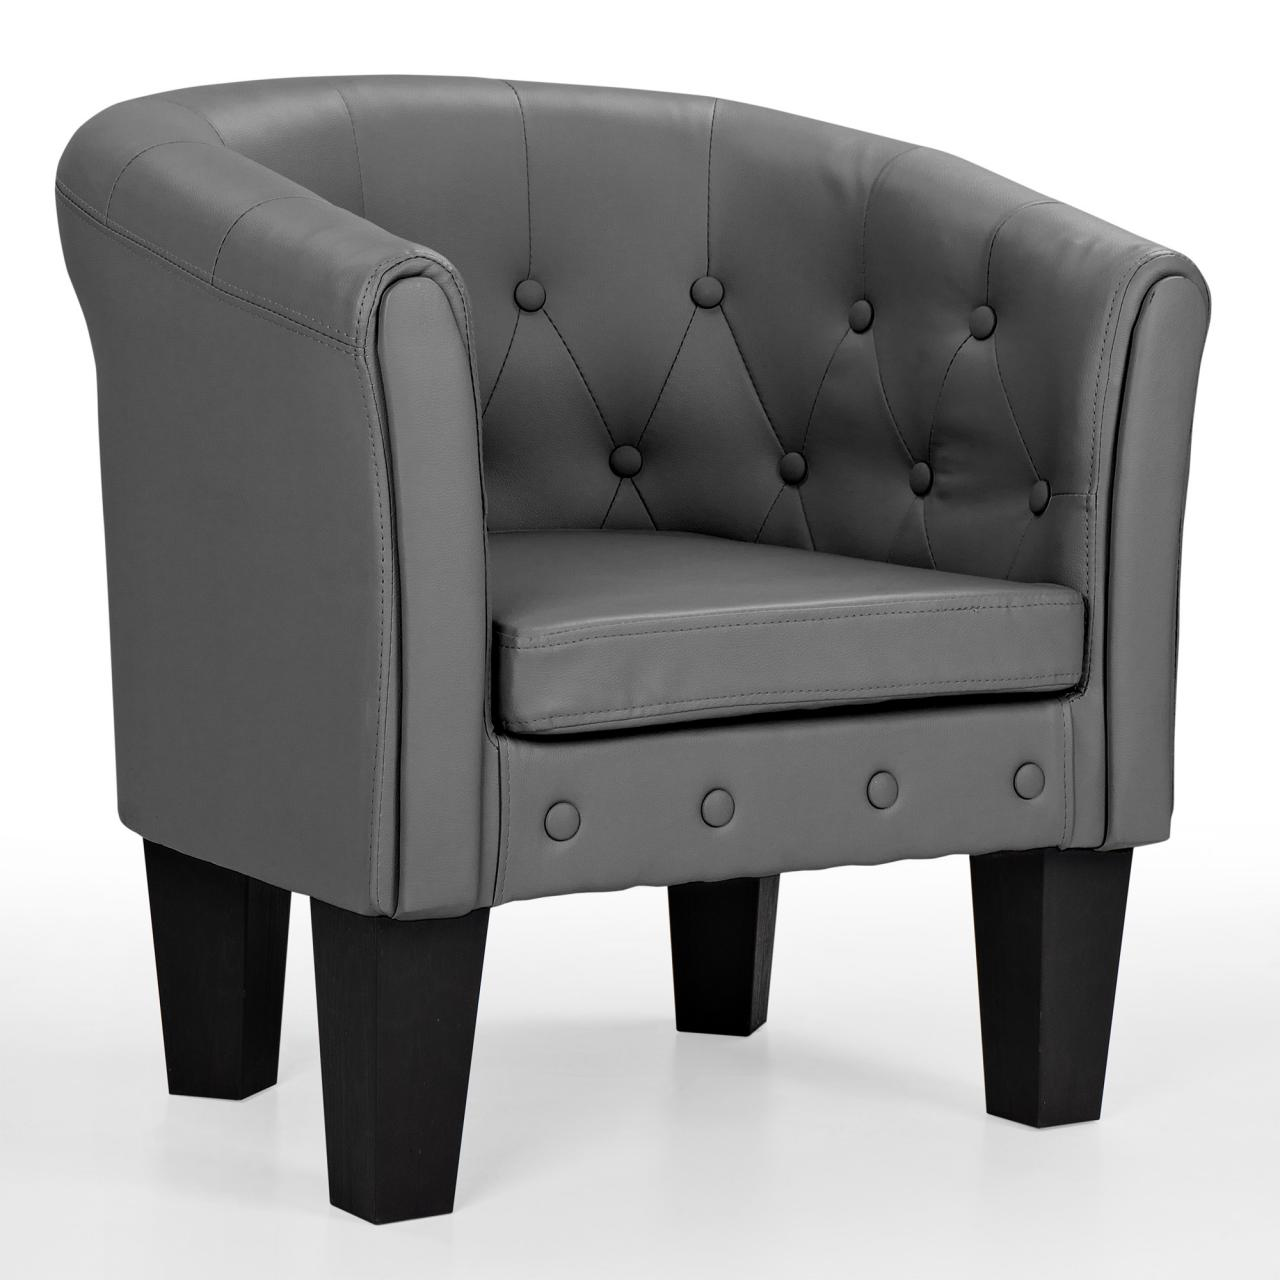 HOMELUX Chesterfield Sessel Lounge Couch Sofa Büro Möbel ...